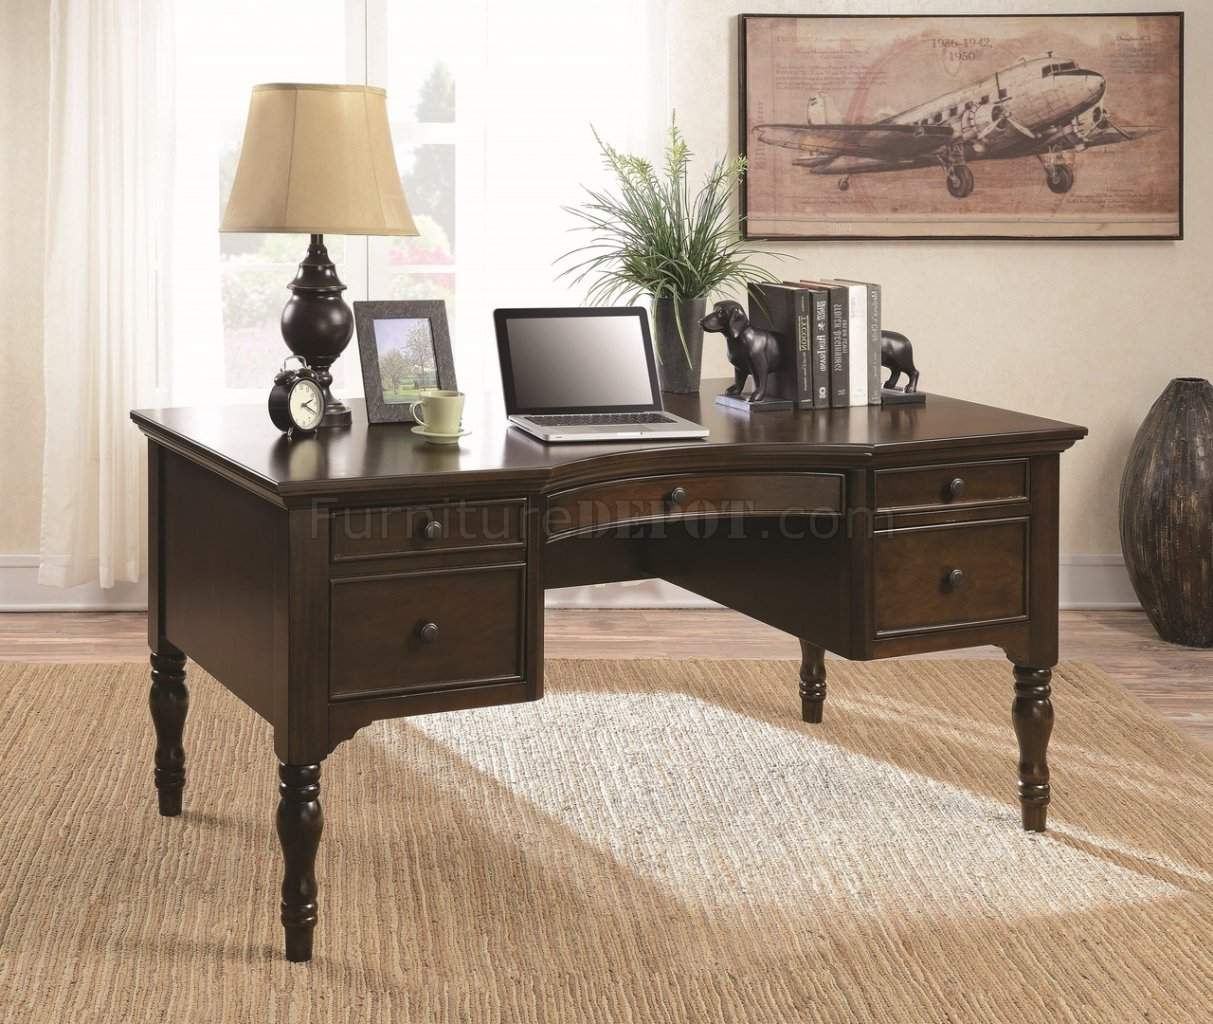 Home Office Furniture Fort Worth: 800850 Writing Desk In Chestnut By Coaster